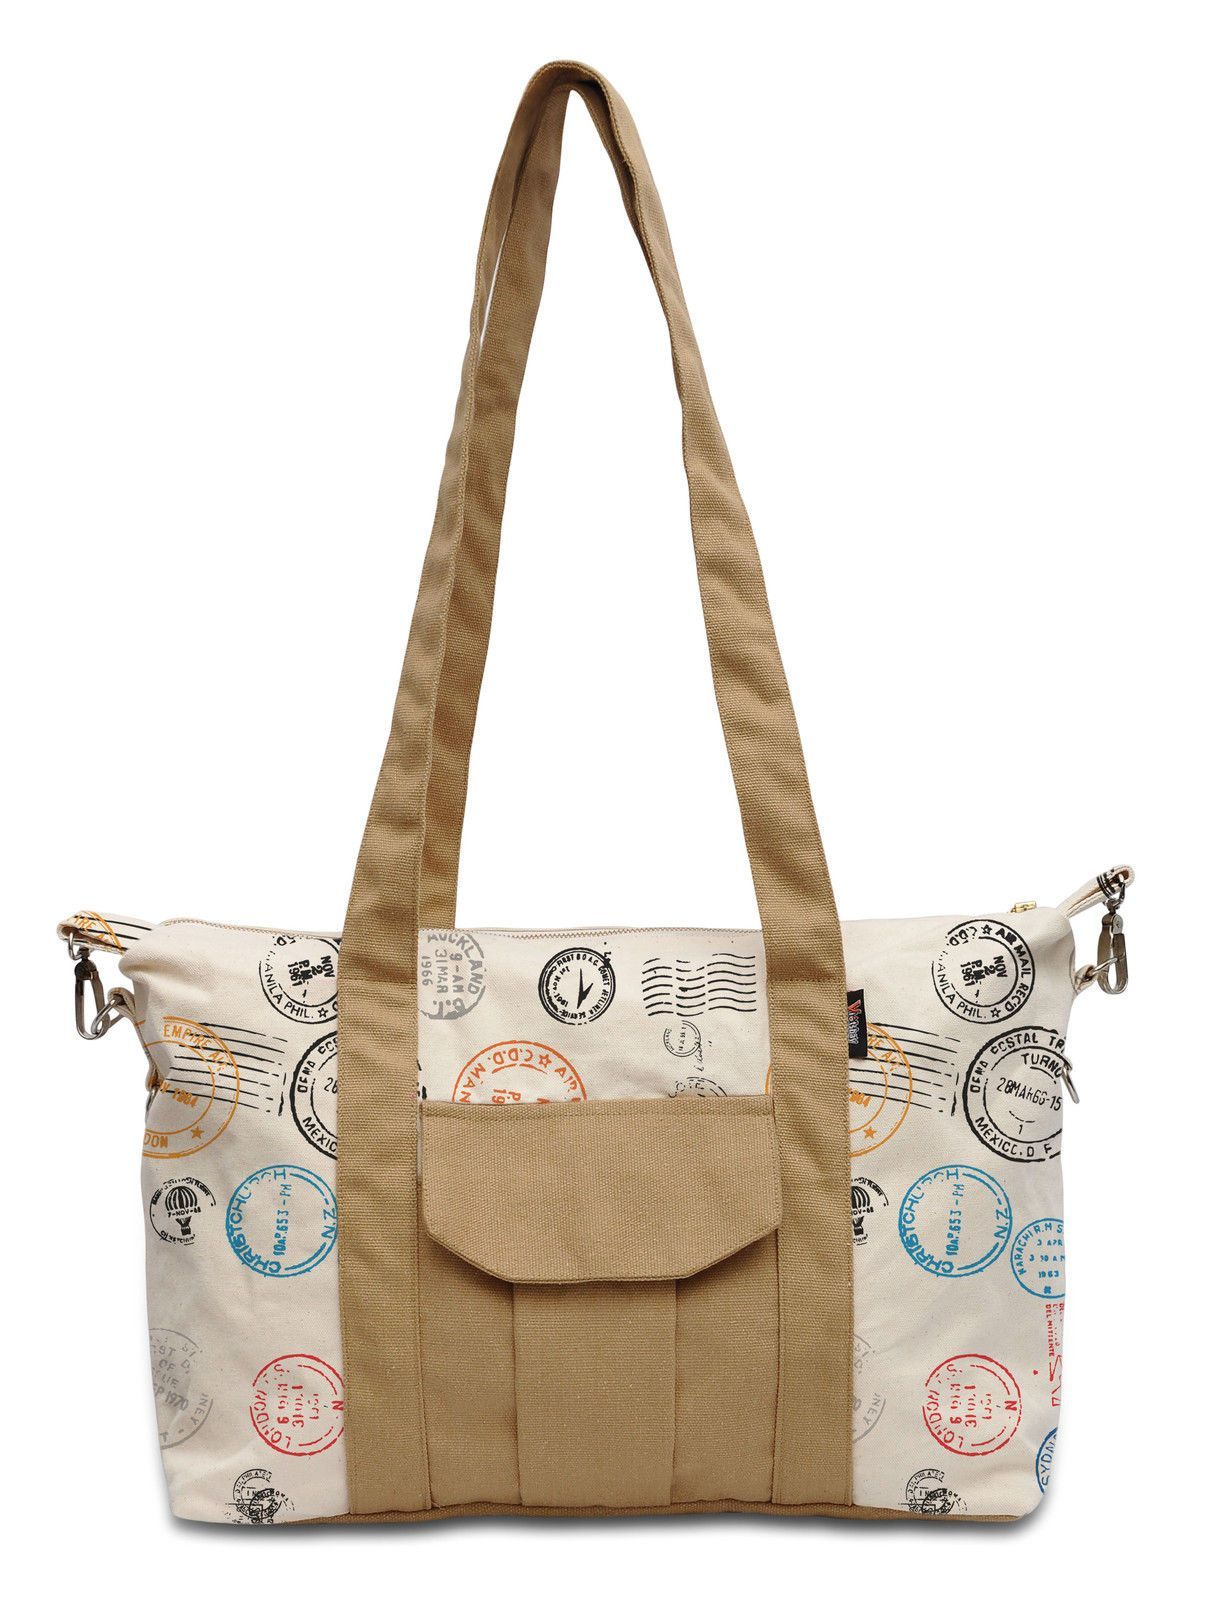 Vietsbay Traveling Stamp-1 Printed Picnic Cotton Canvas Shoulder Bag Was_18